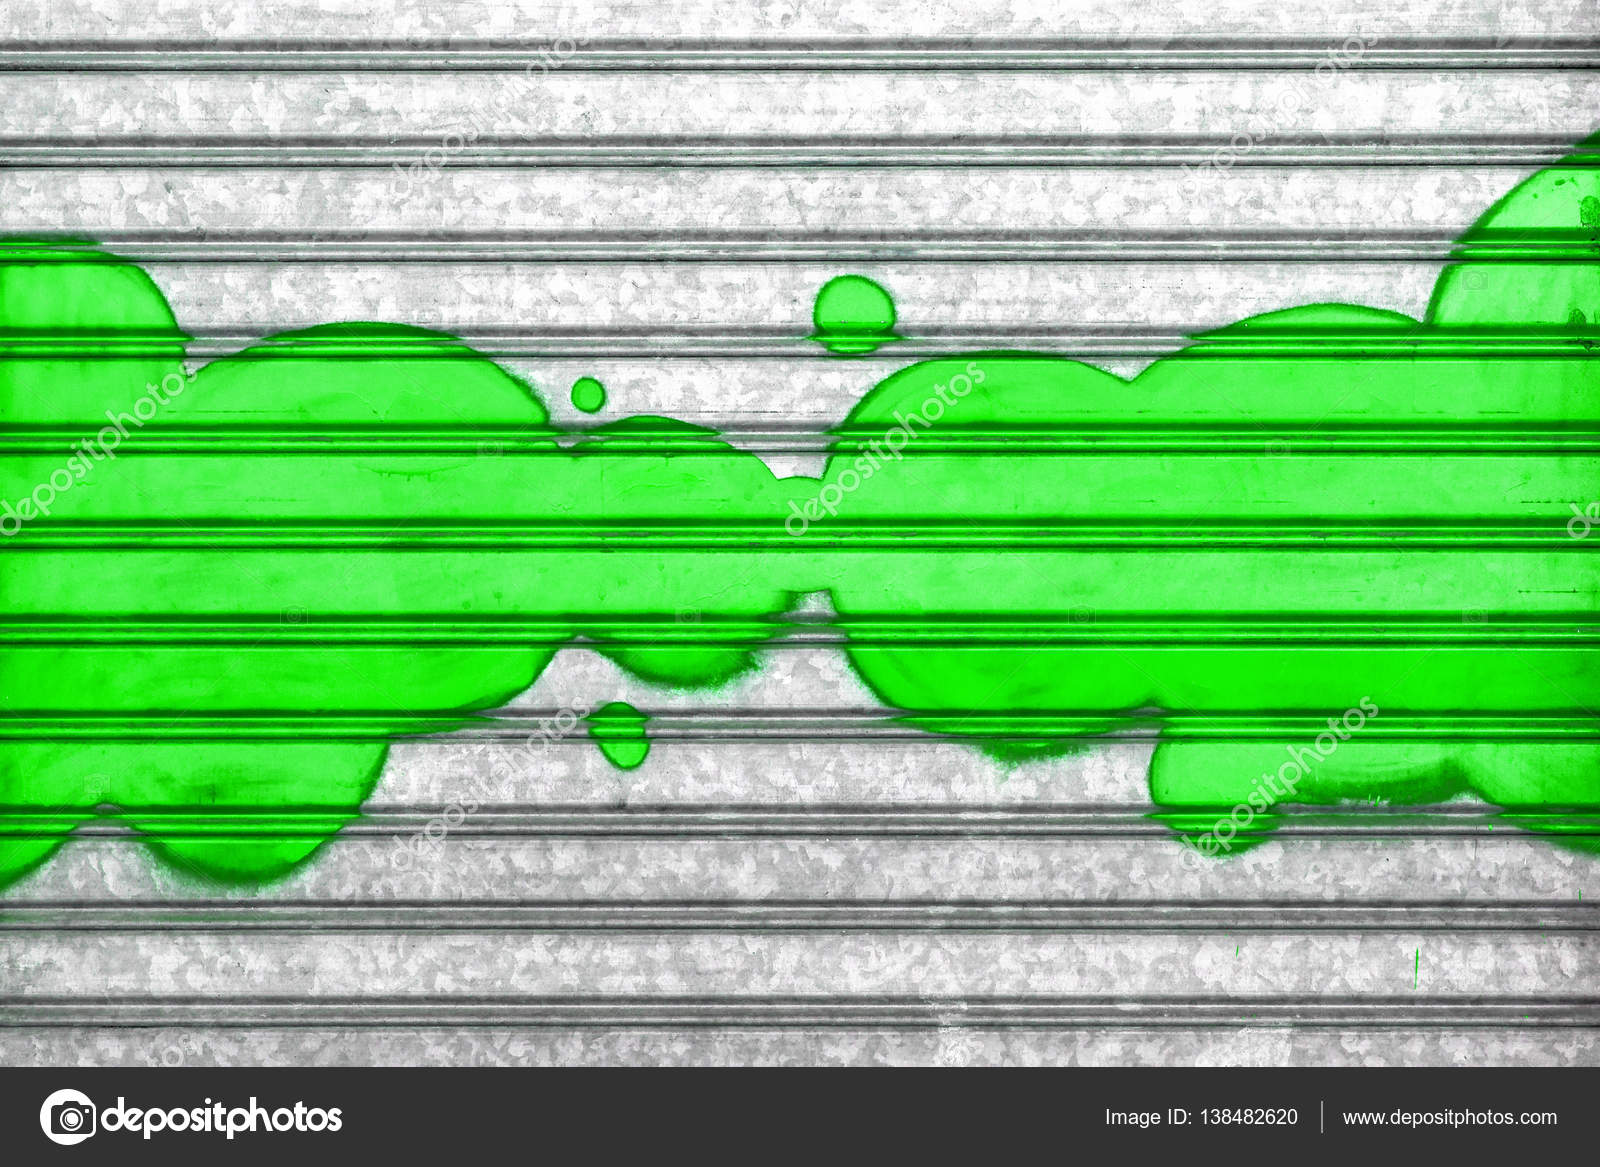 Green bubbles painted with spray paint on a roller shutter